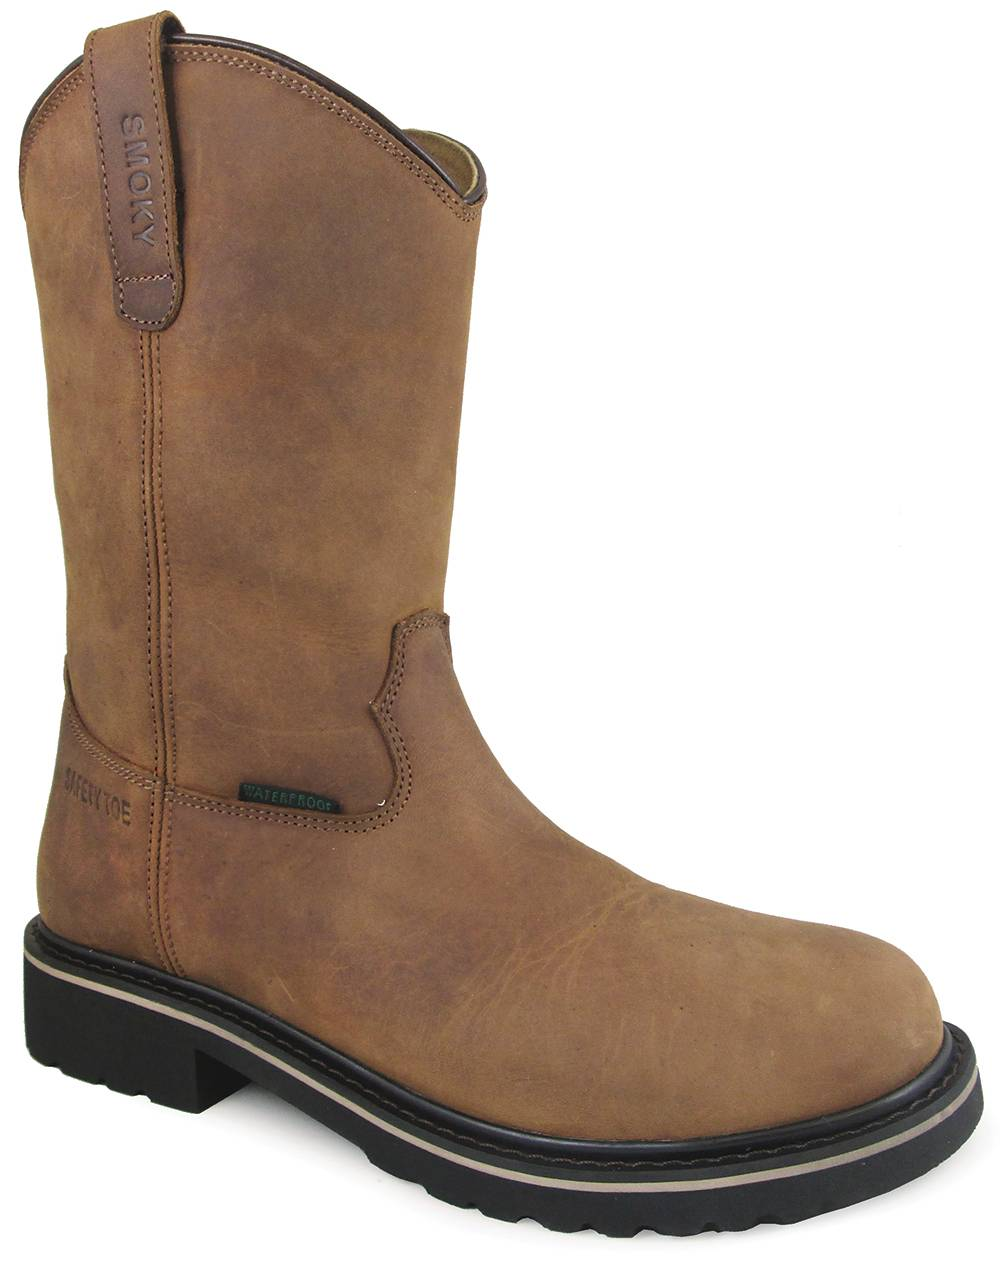 Smoky Mountain Scottsdale 10'' Waterproof Safety Toe Wellington Boots - Mens - Brown